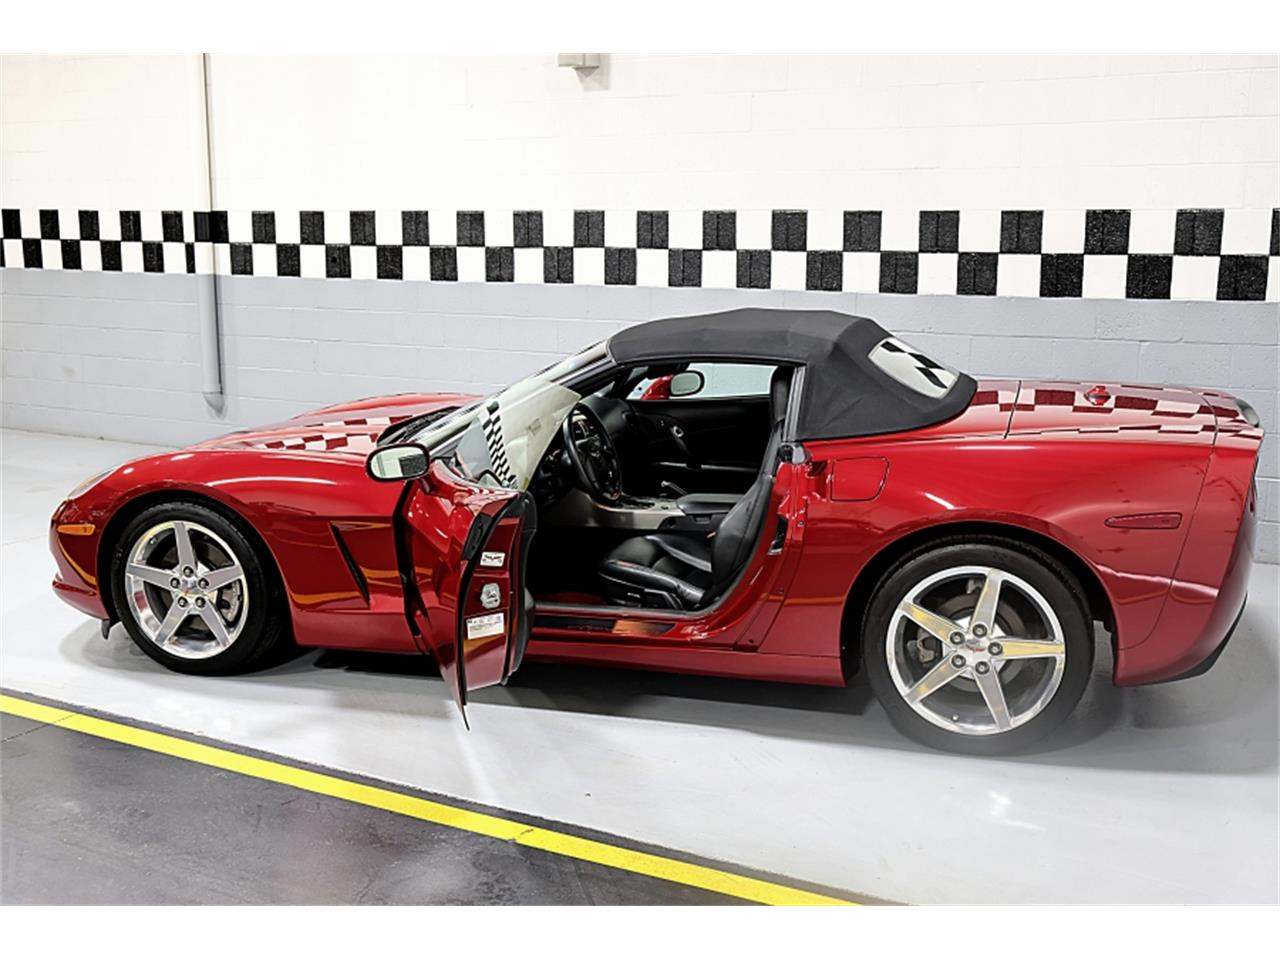 2005 Chevrolet Corvette (CC-1388747) for sale in Old Forge, Pennsylvania